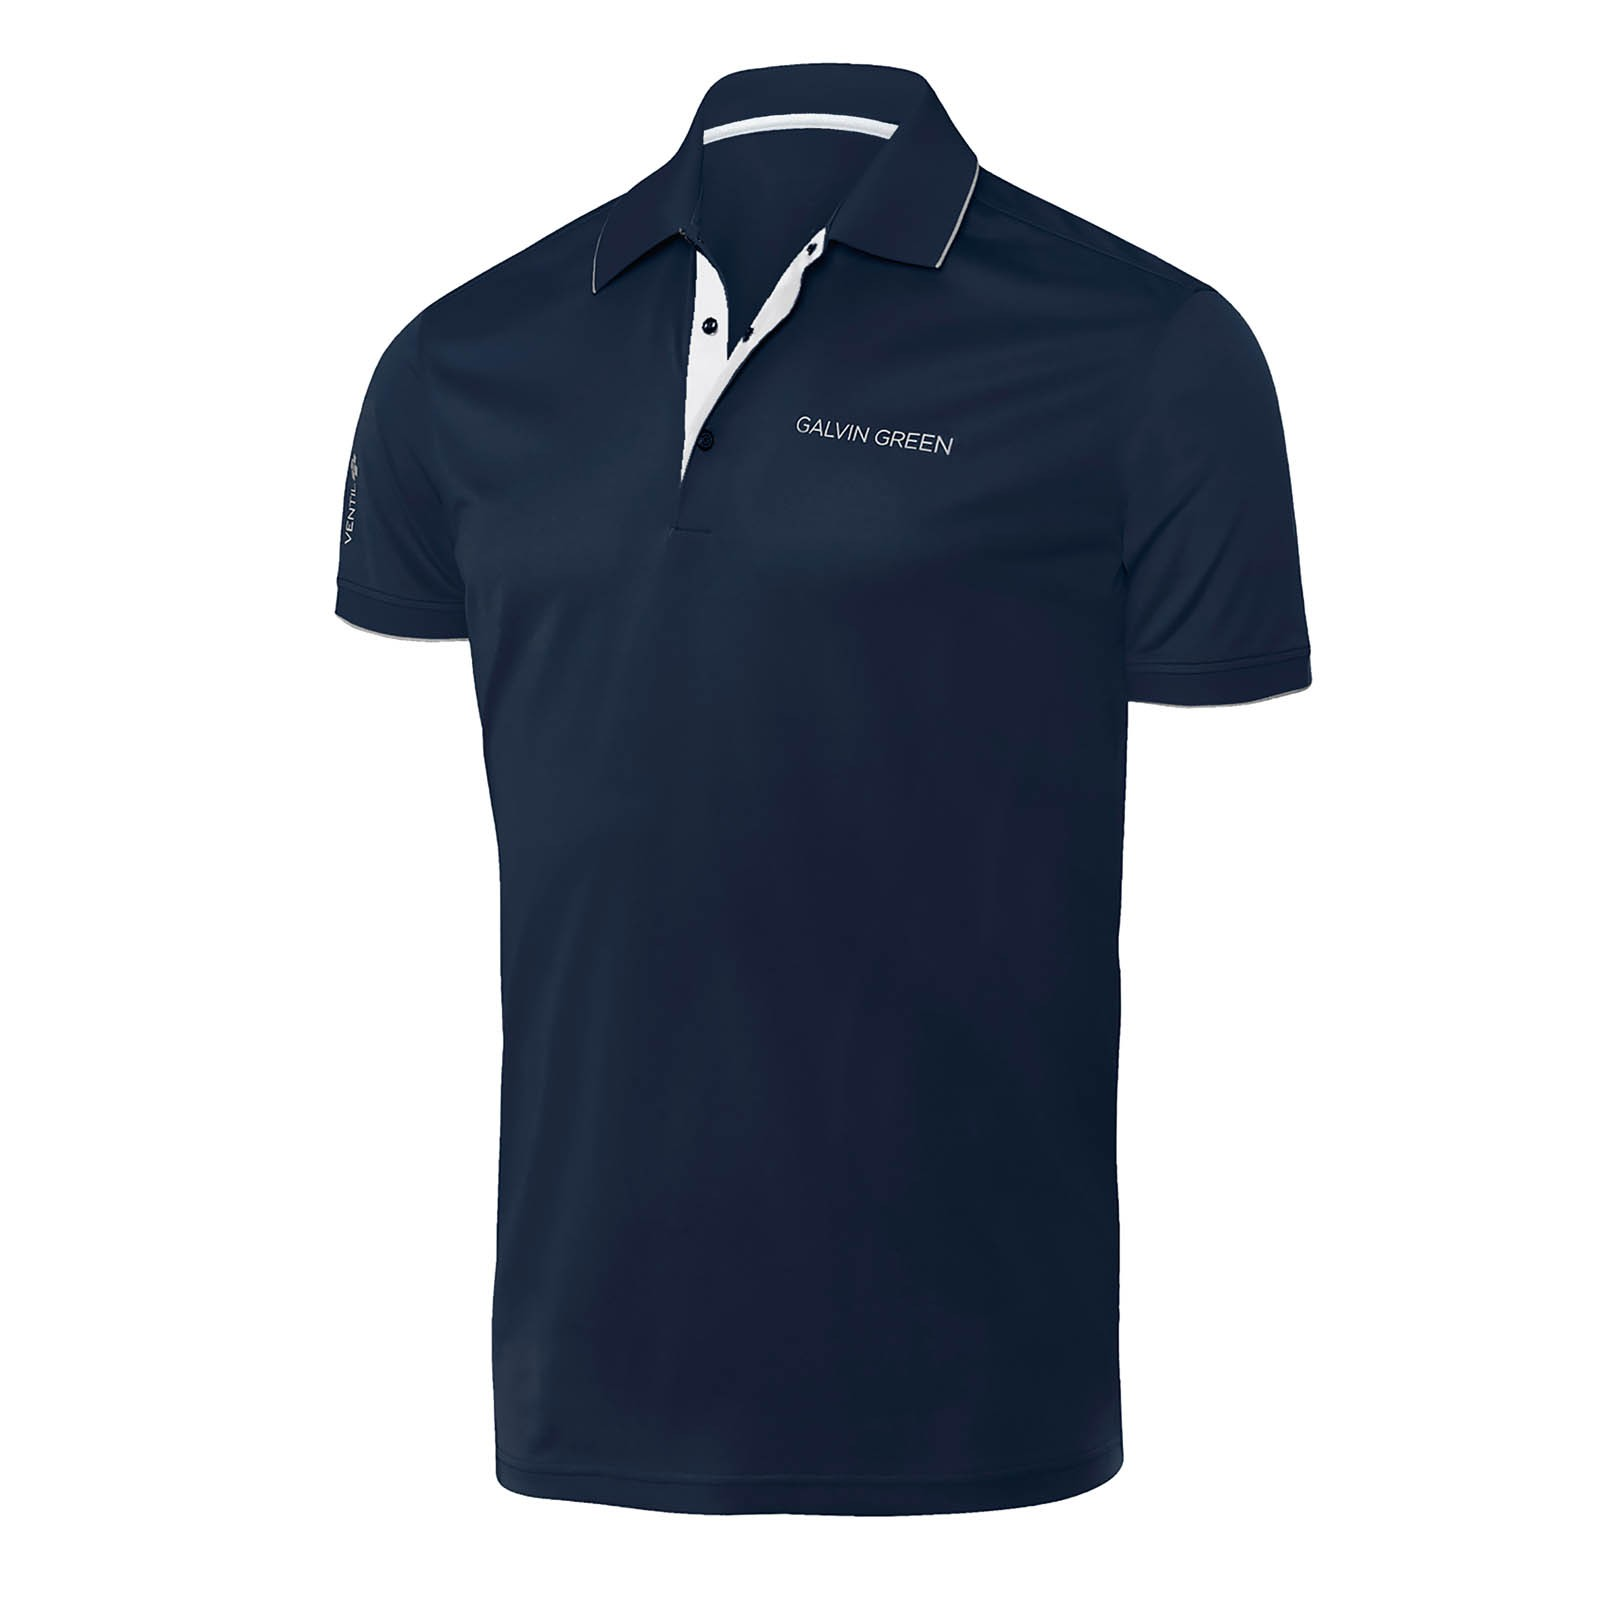 Galvin Green Marty Tour Edition Polo Shirts